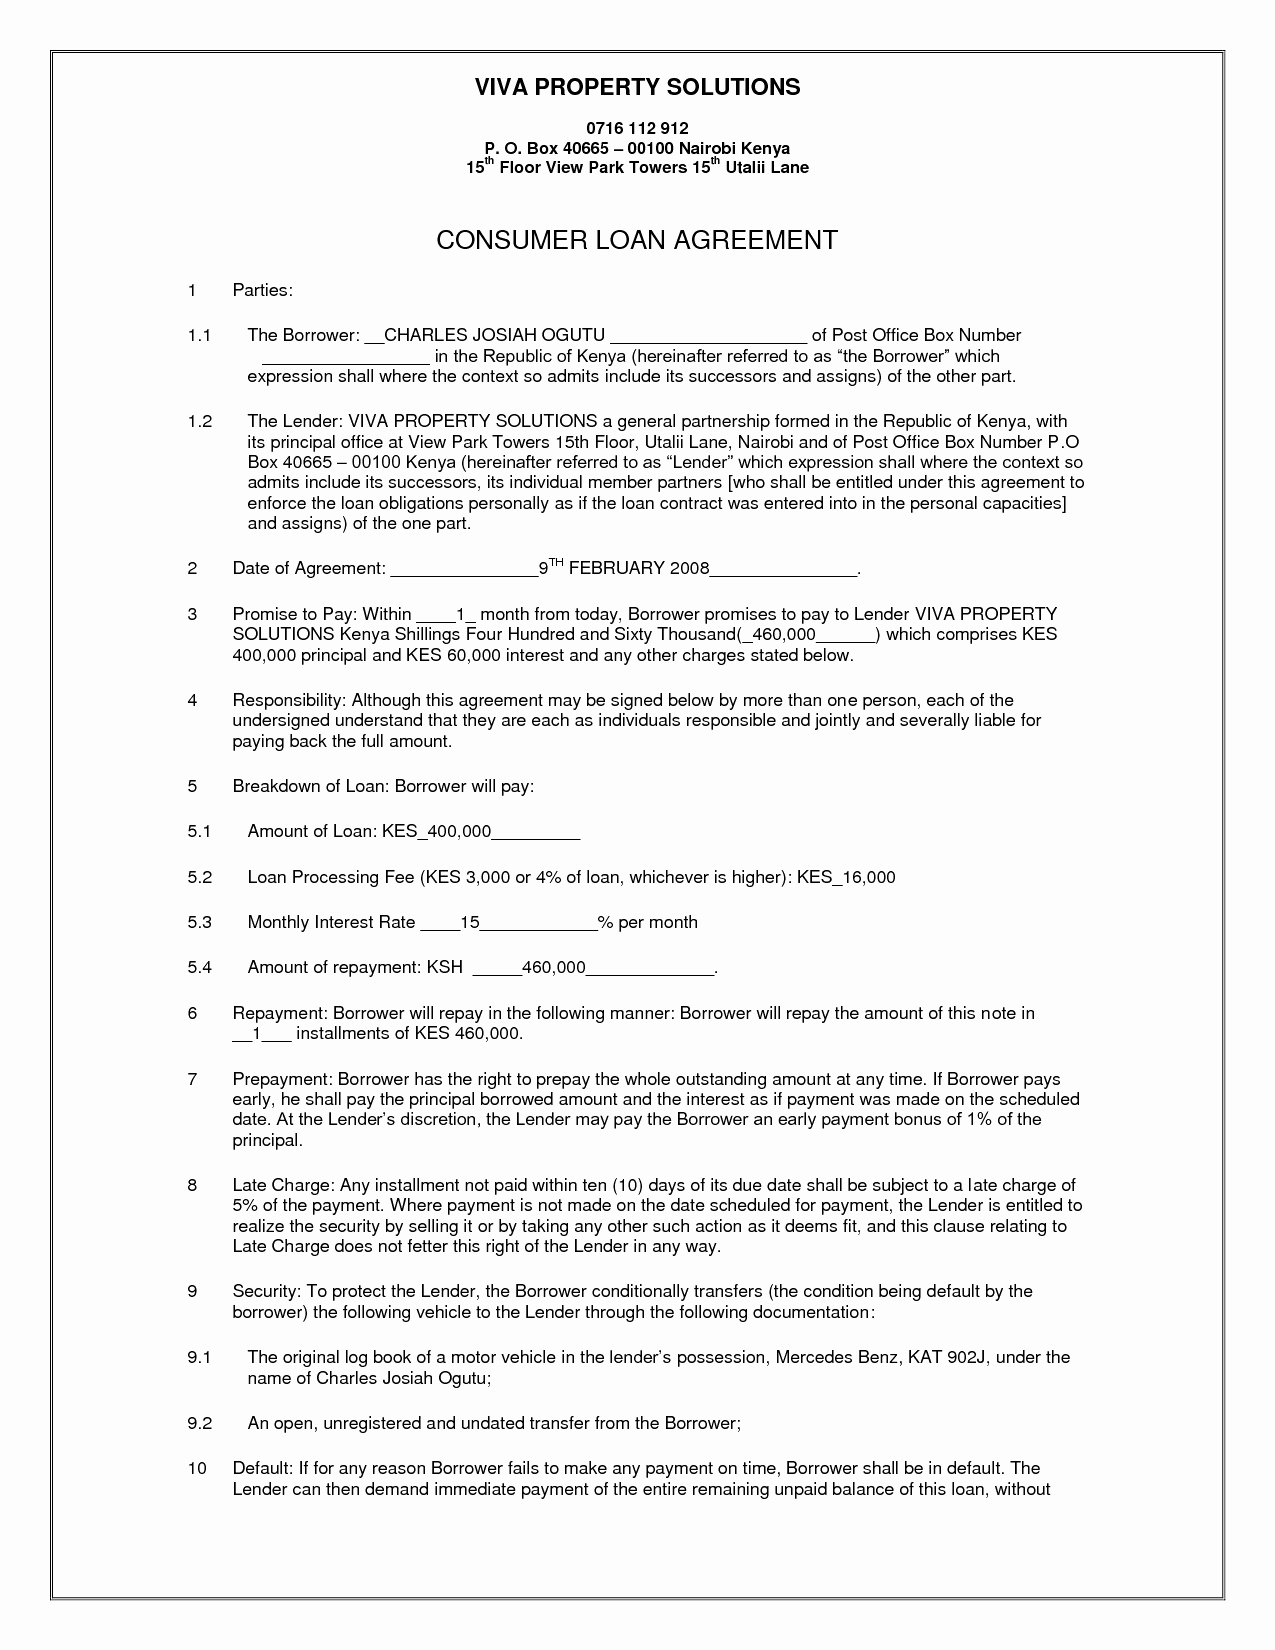 Graphic Design Contract Pdf Fresh Graphic Design Contract Pdf Fresh 187 Best Graphic Design Tips